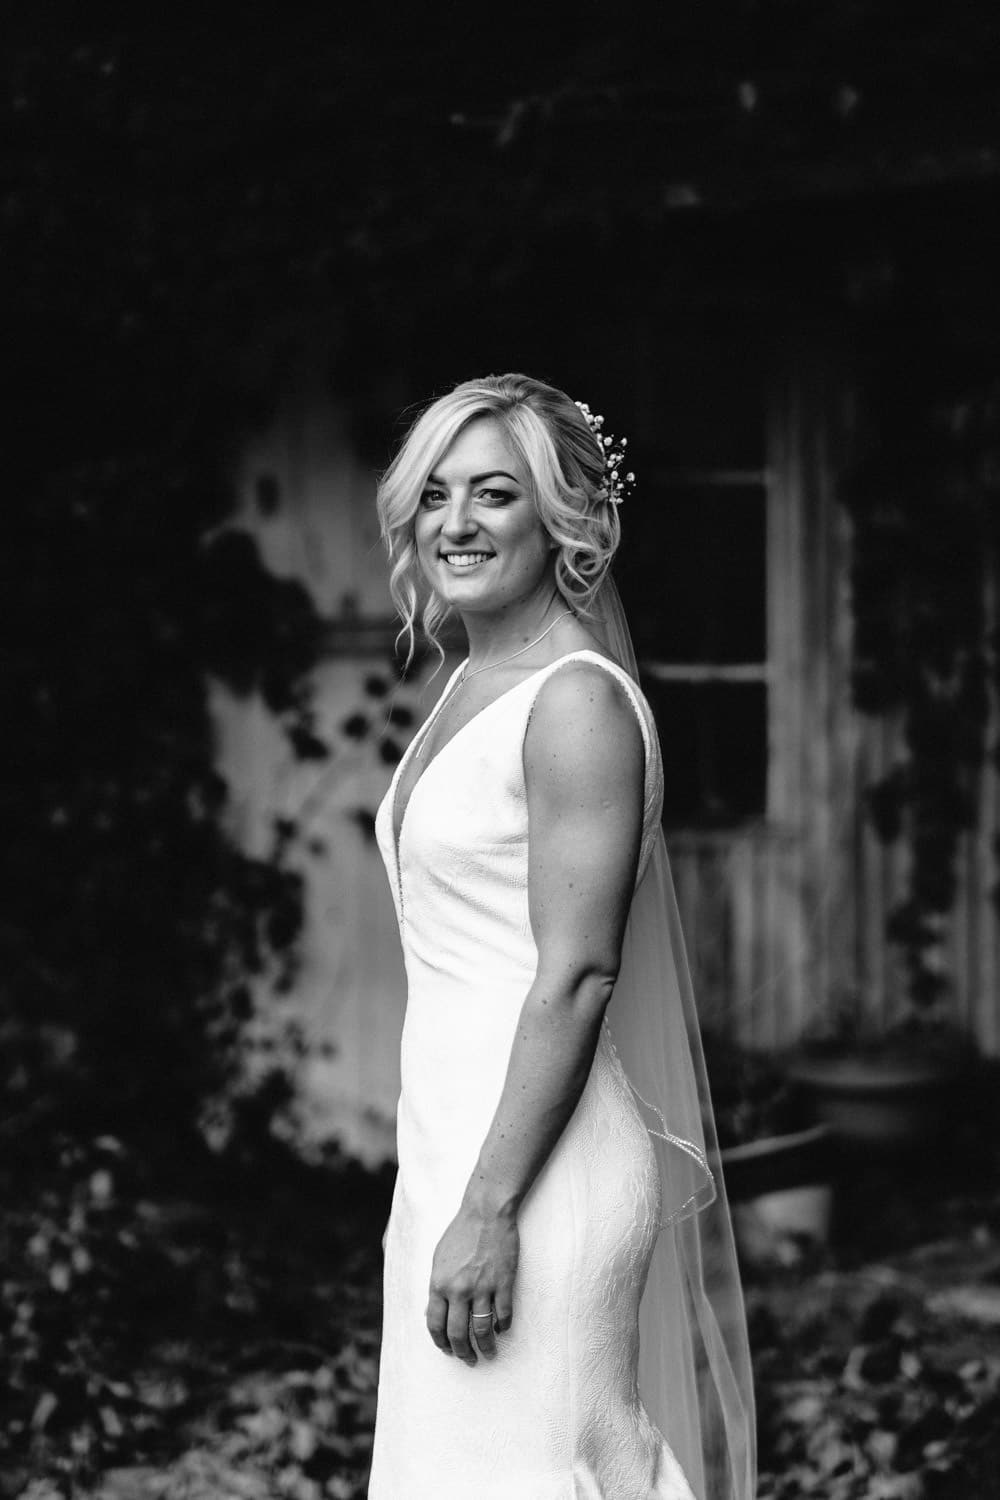 bride standing in garden black and white